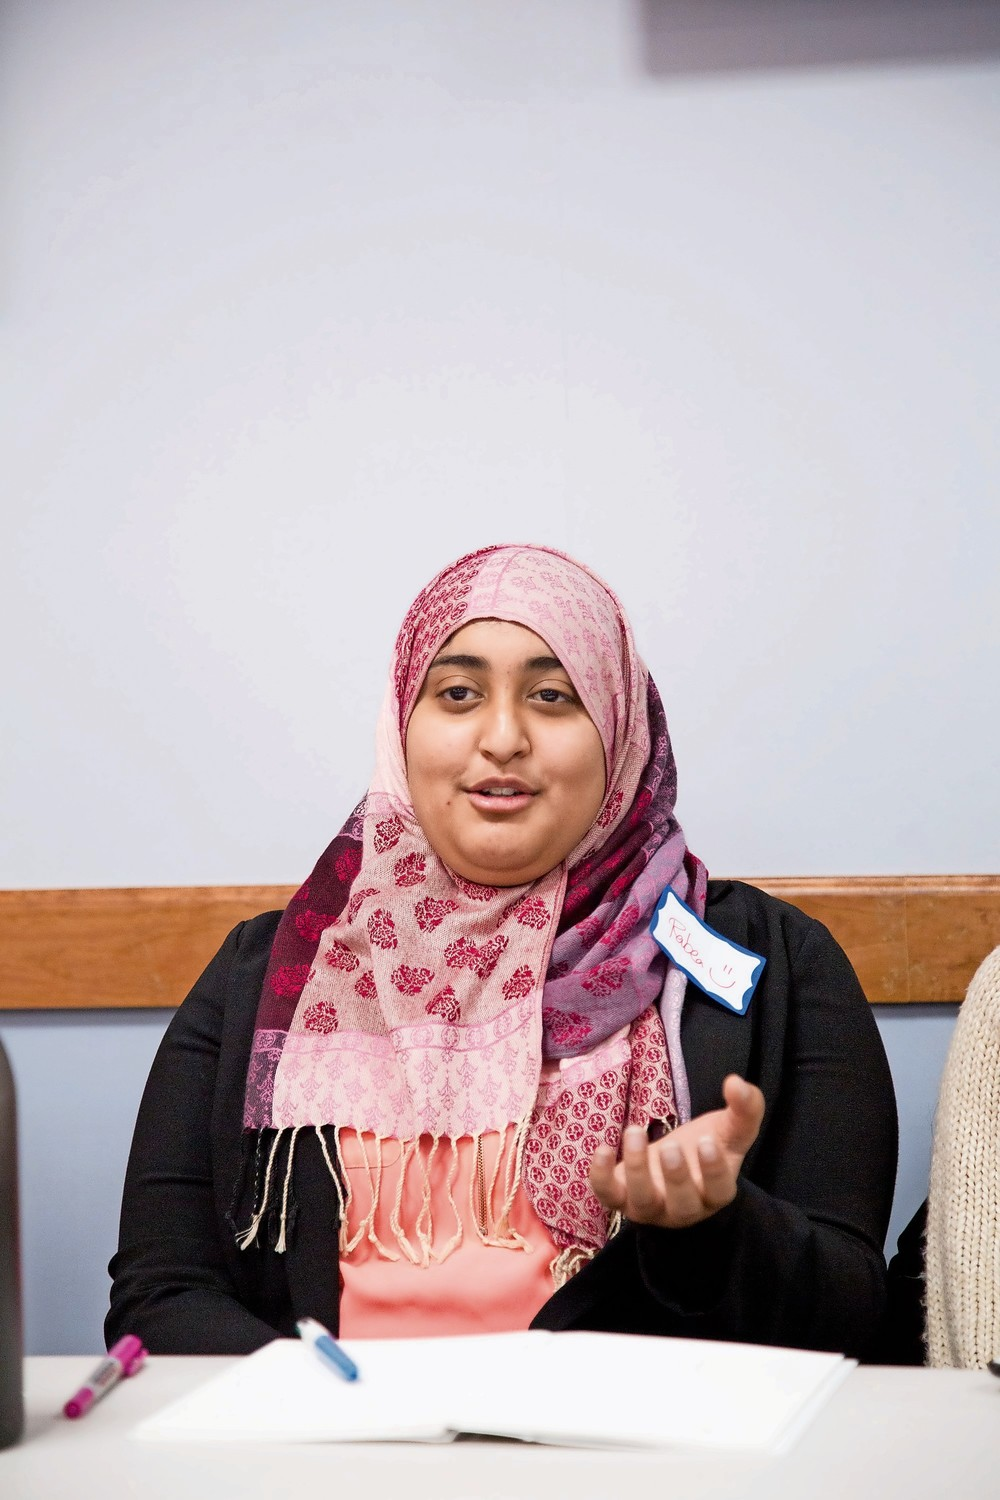 Rabea Ali, a Muslim student at Manhattan College, third from left, speaks about her experiences as a Muslim Pakistani-American woman as part of an interfaith event for Jewish and Muslim Youth at the Riverdale Y.